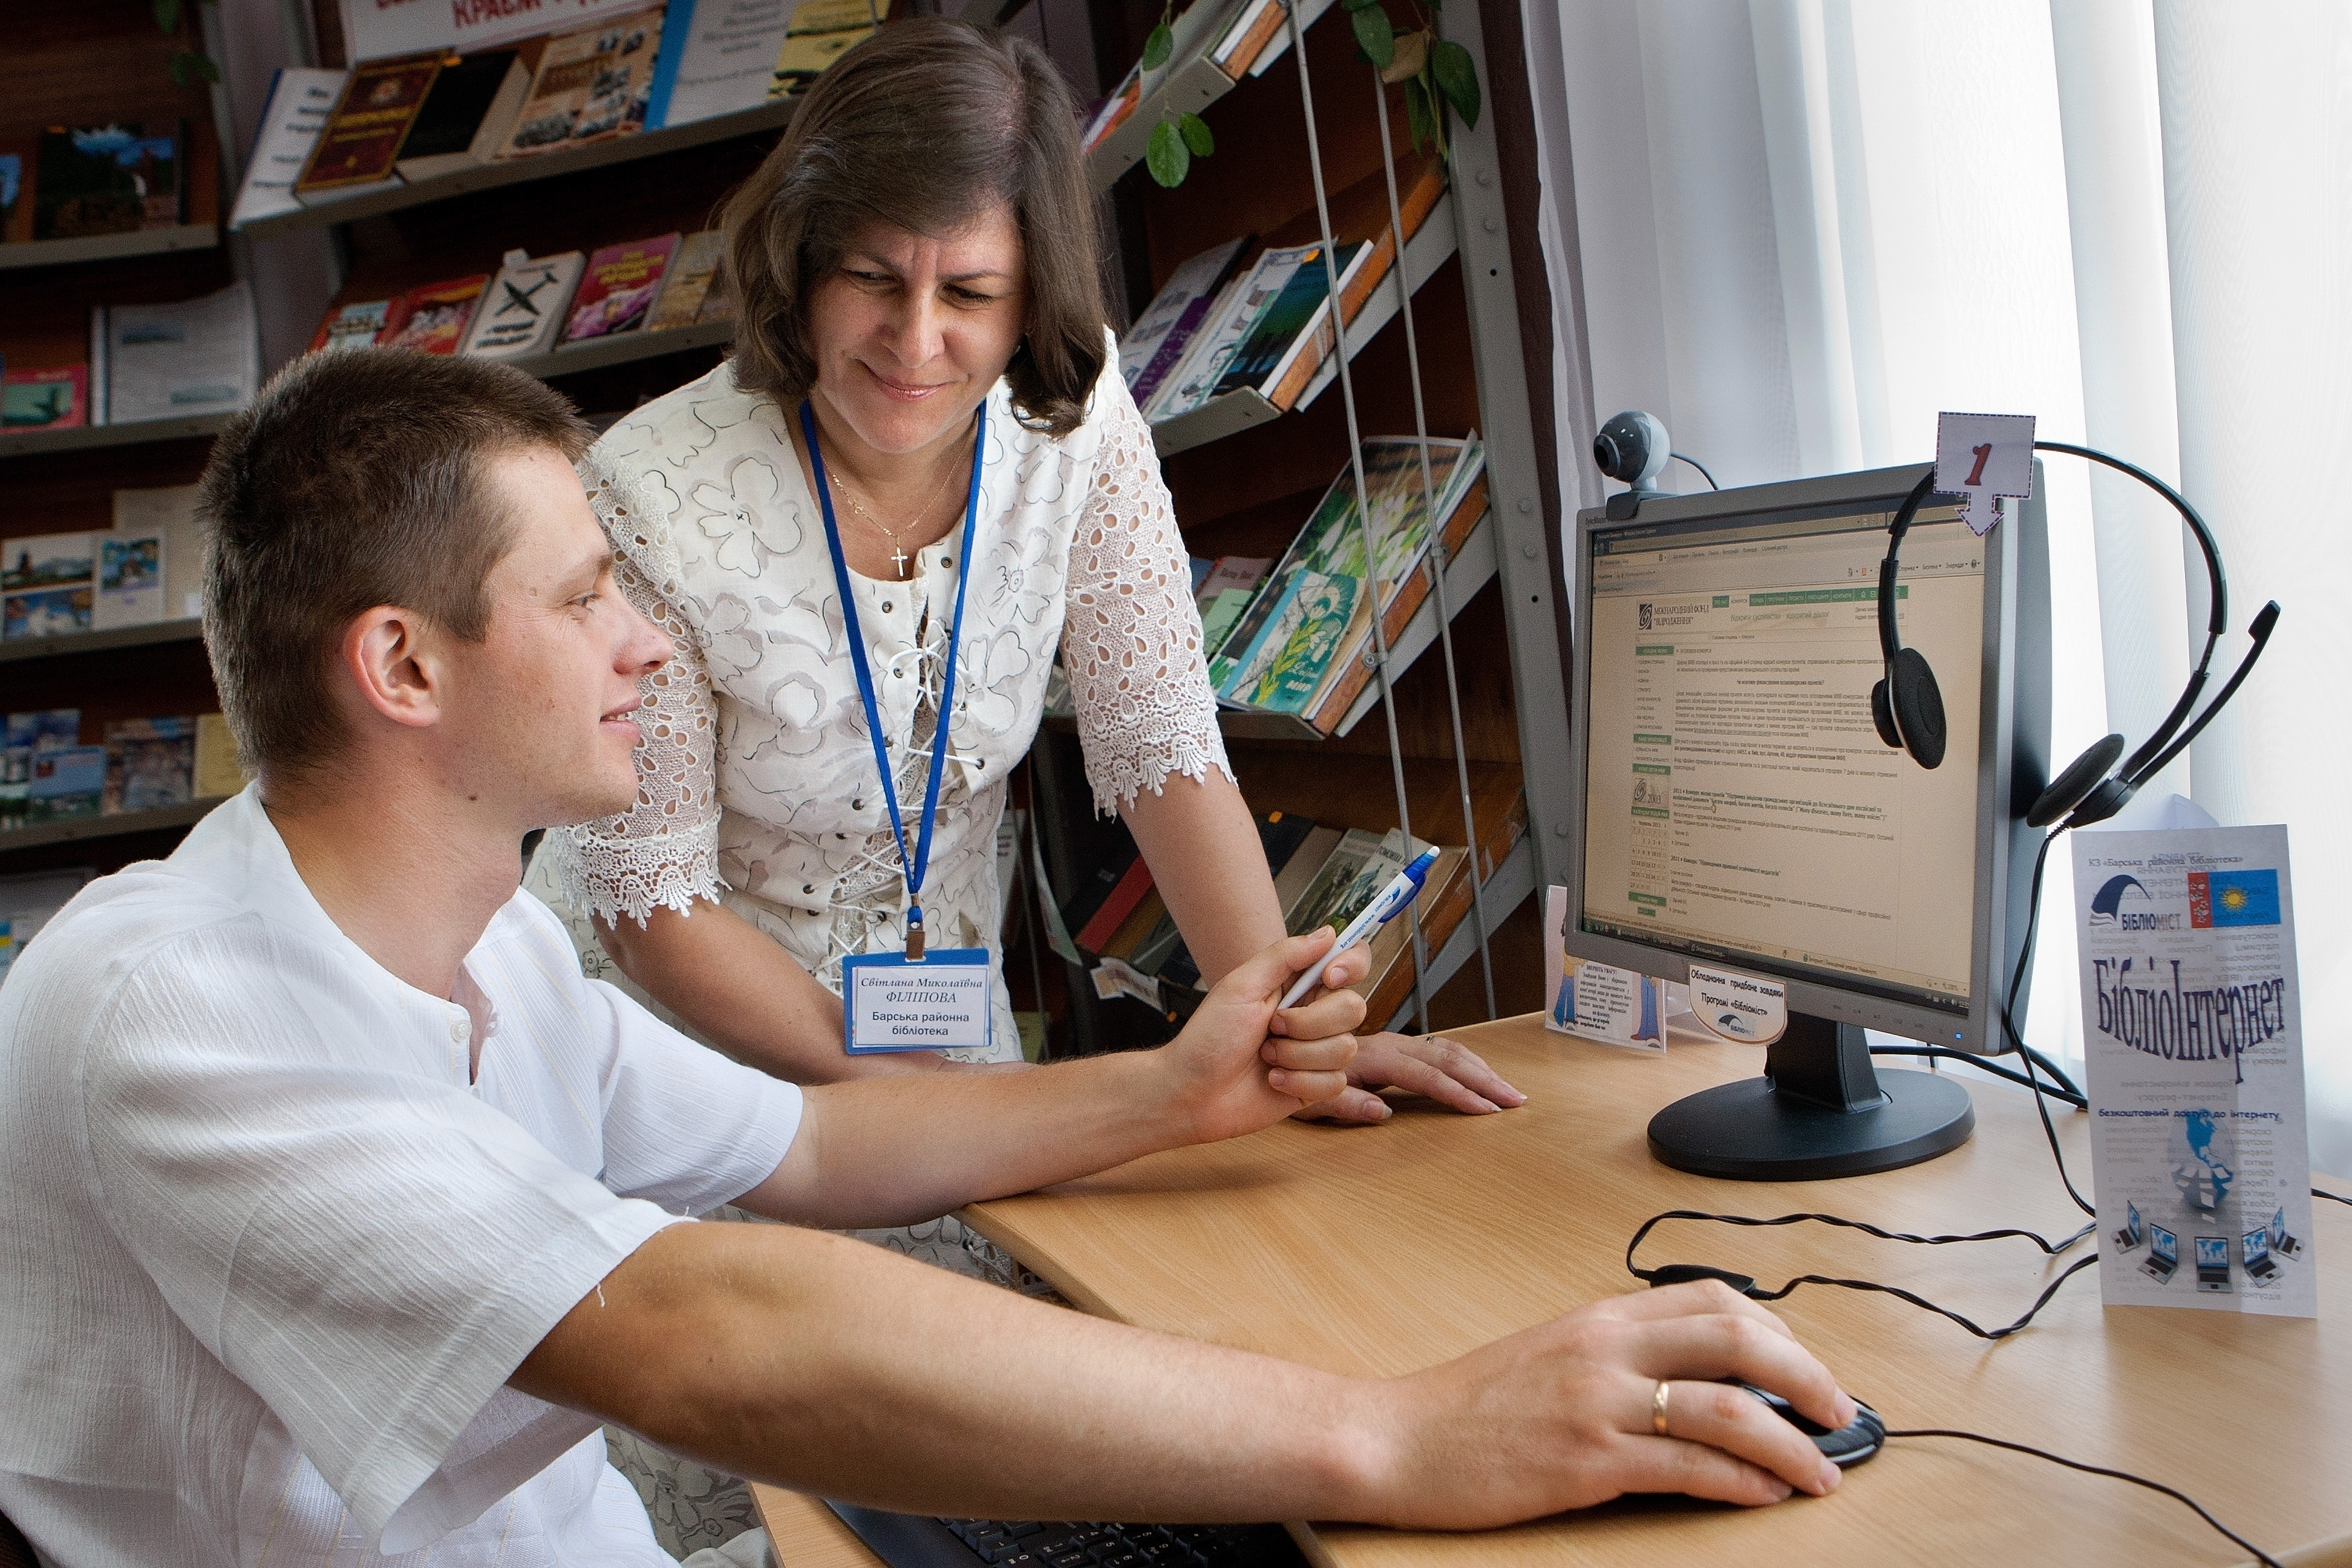 A Library Consultant teaches a patron about using the Internet.